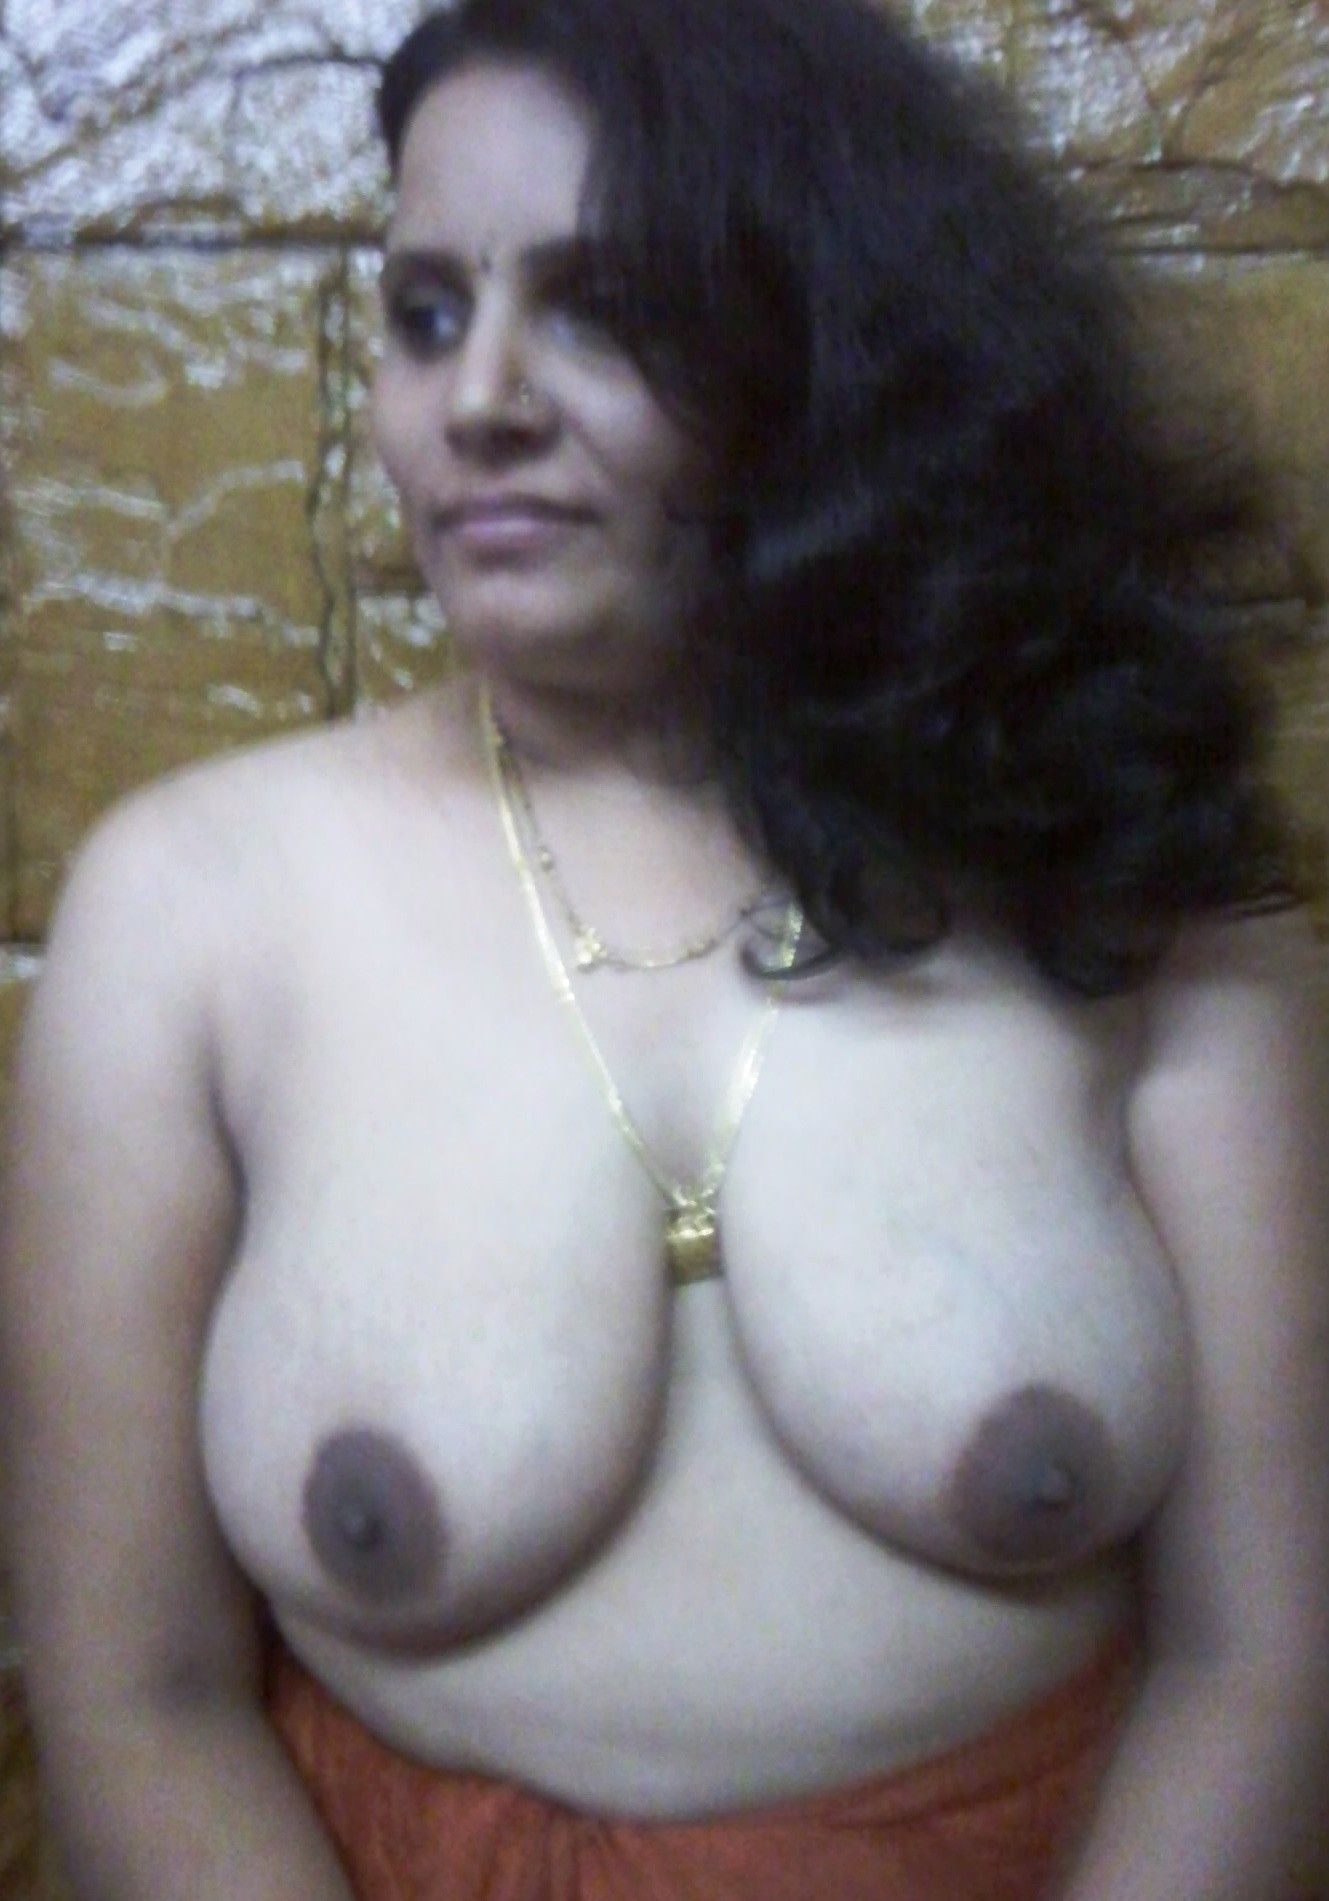 India most sexy women nude pics